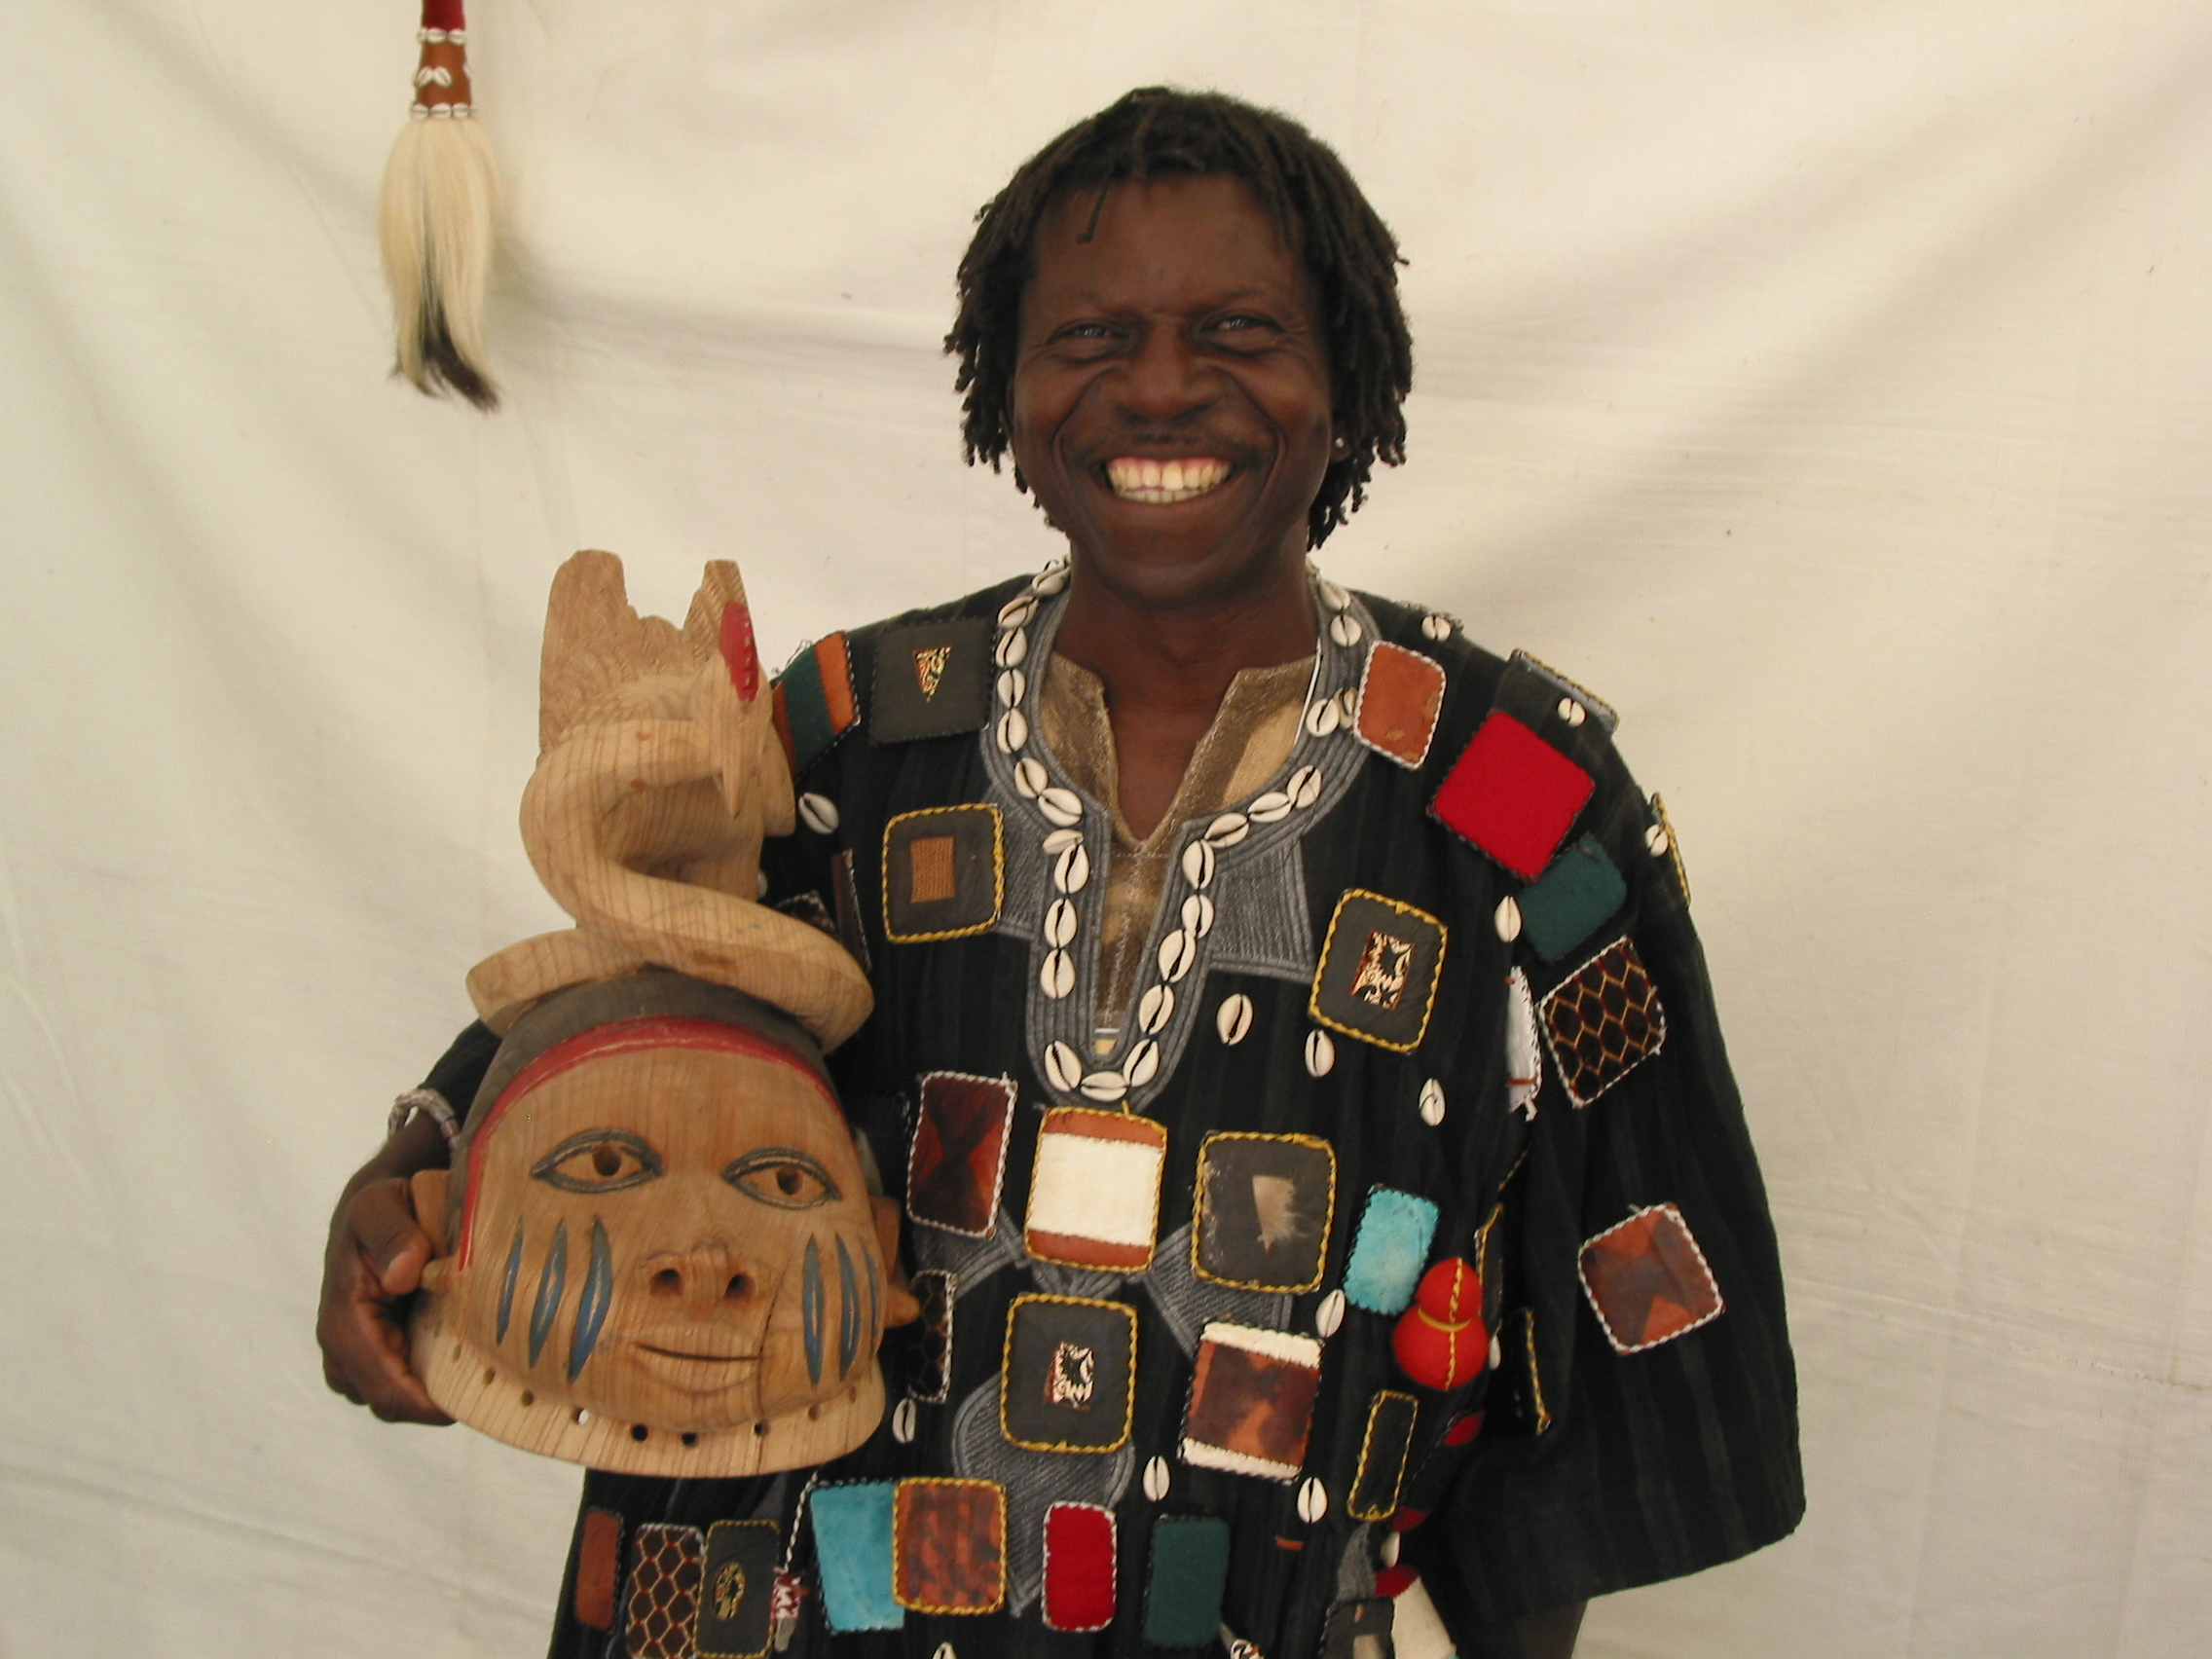 Djam Vivie was named a master wood carver by his community in Ghana before moving to Madison.  Shown here with a mask he made.